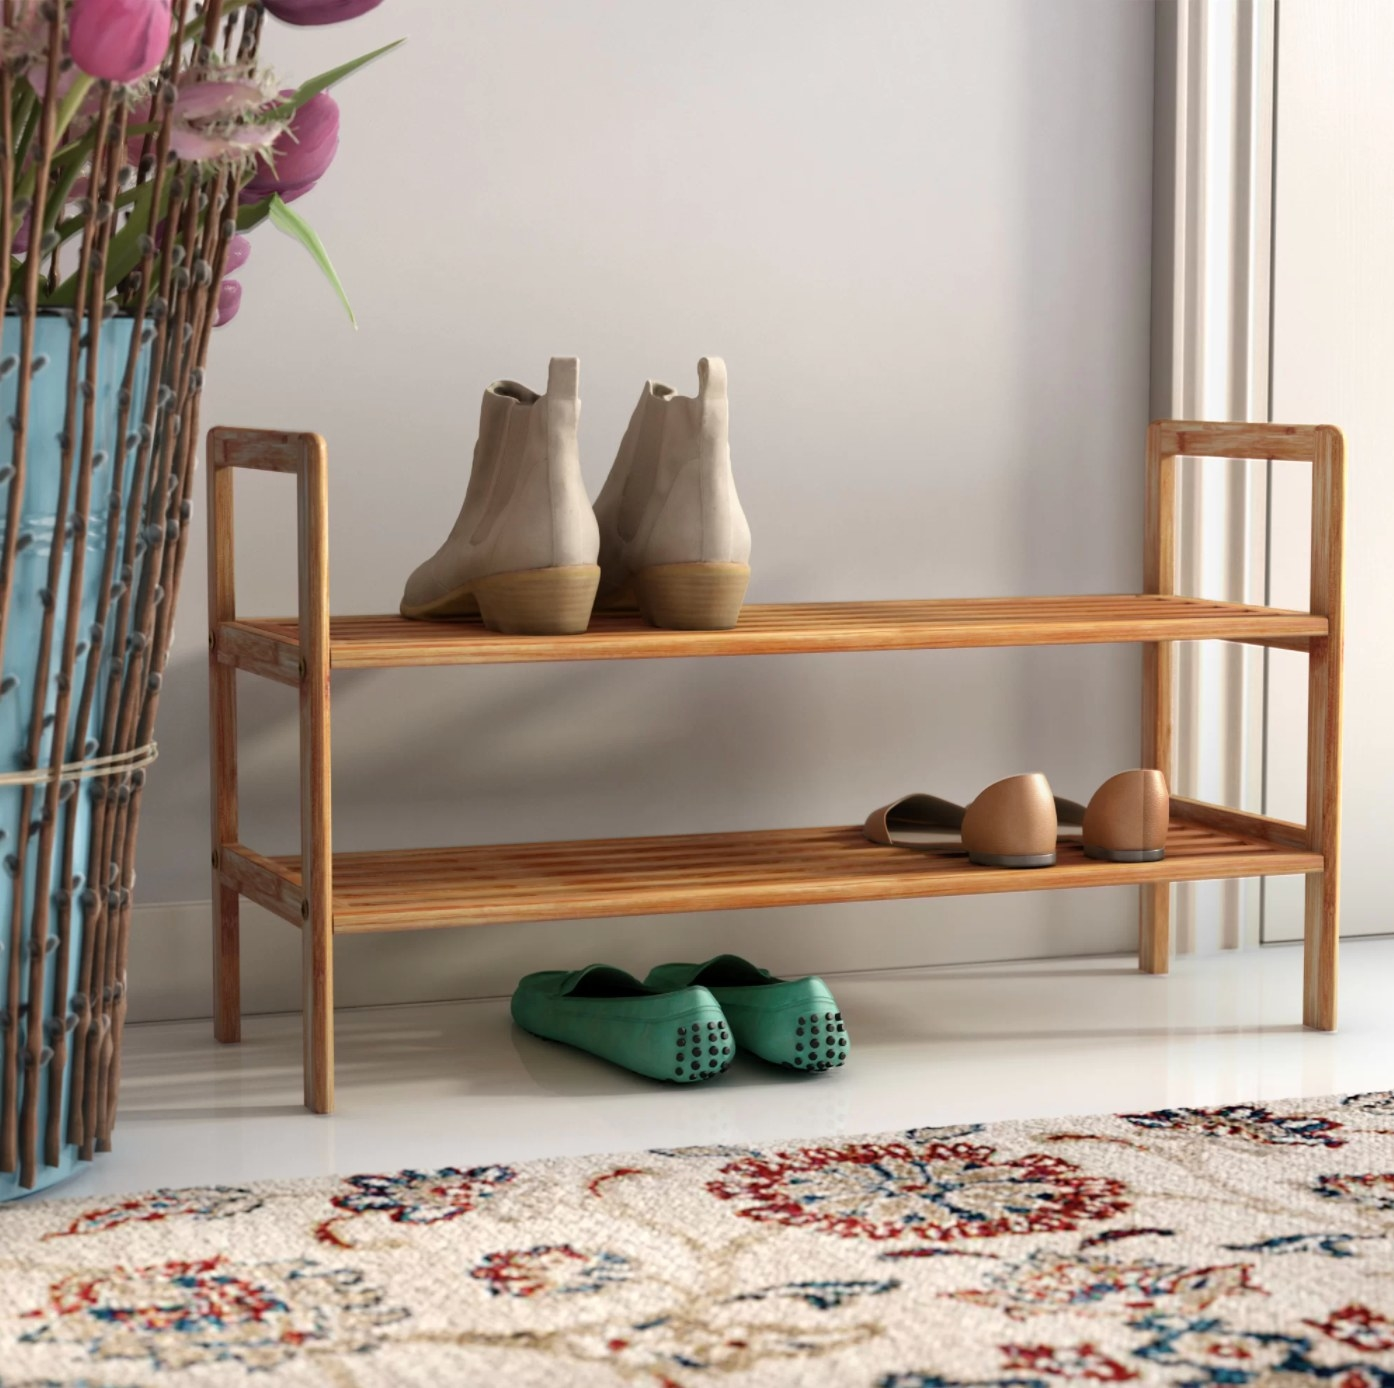 The two-tier shoe rack in bamboo holding flats and boots